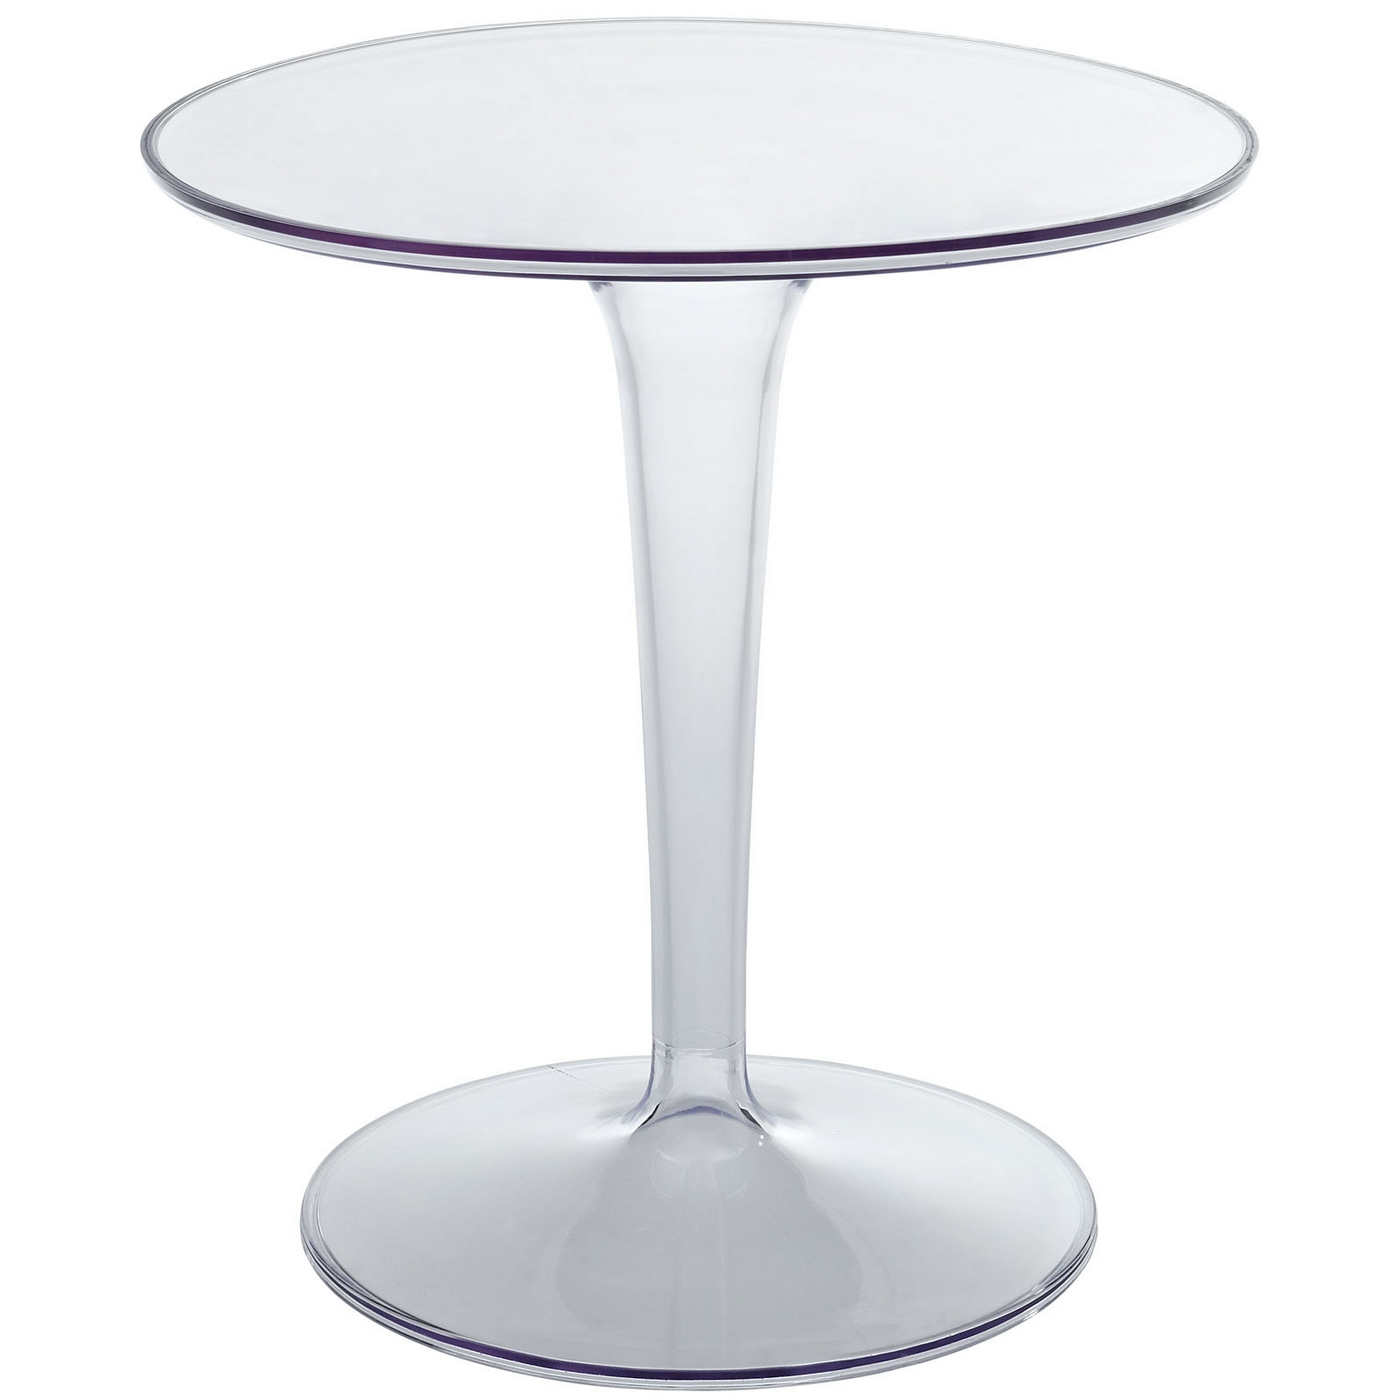 Canvas Modern Round Side Table With Transparent Pedestal